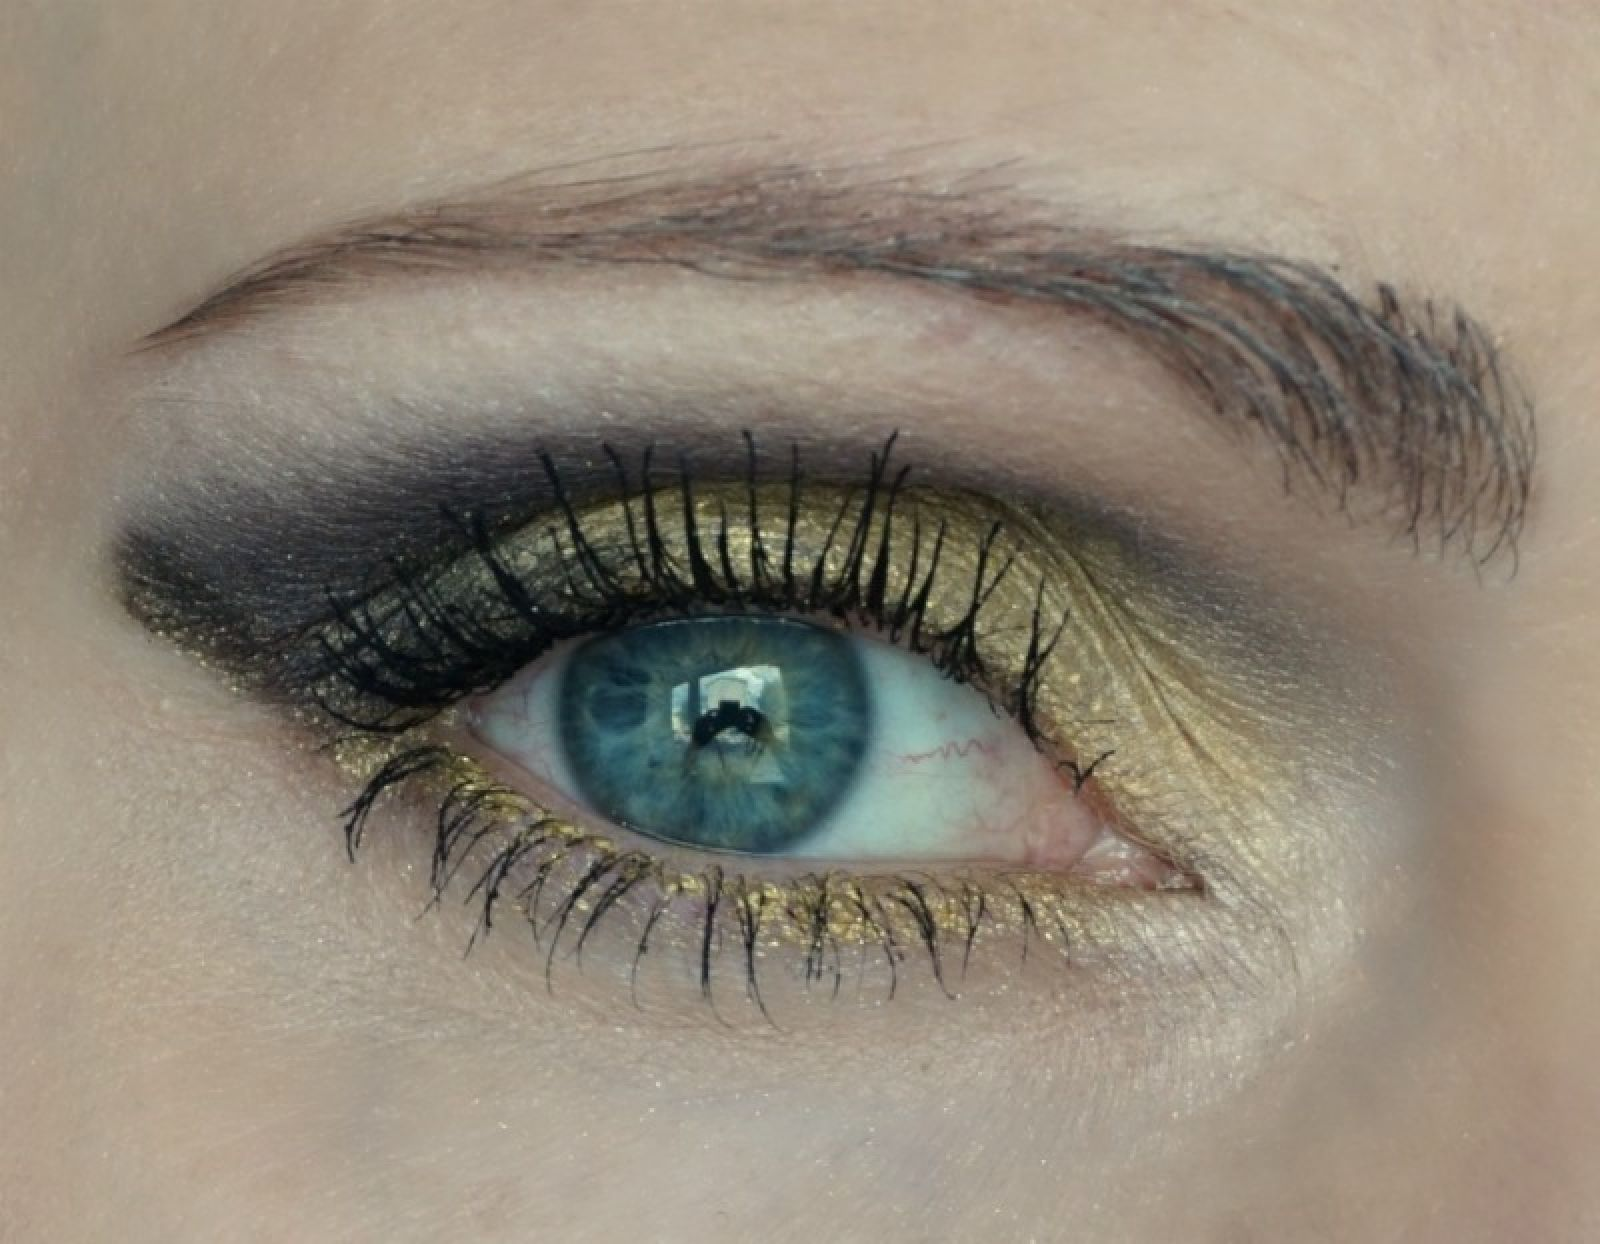 EOTD: taupe plum and yellow eye makeup